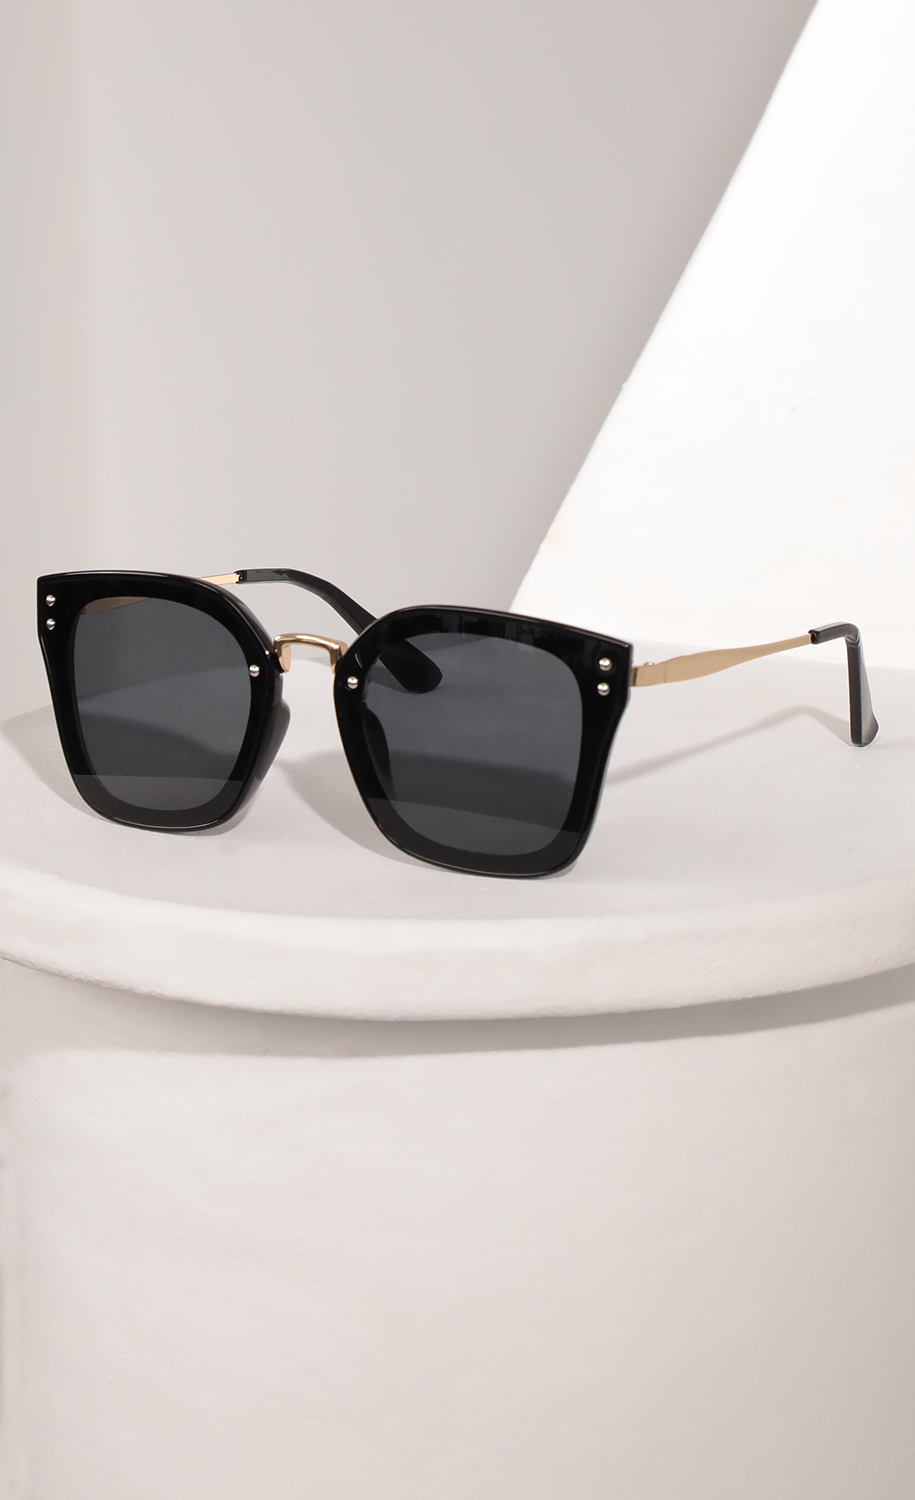 Luxe Square Sunglasses in Black